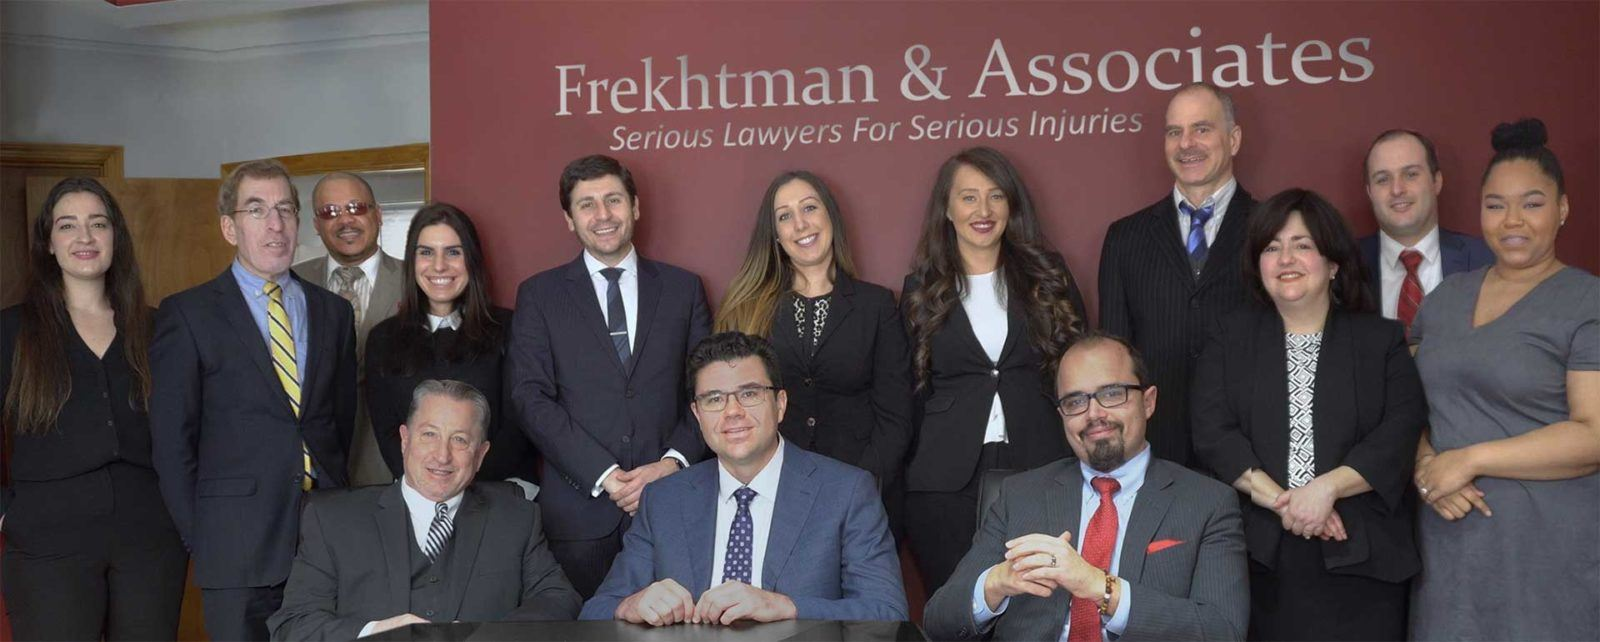 Frekhtman & Associates Injury and Accident Attorneys